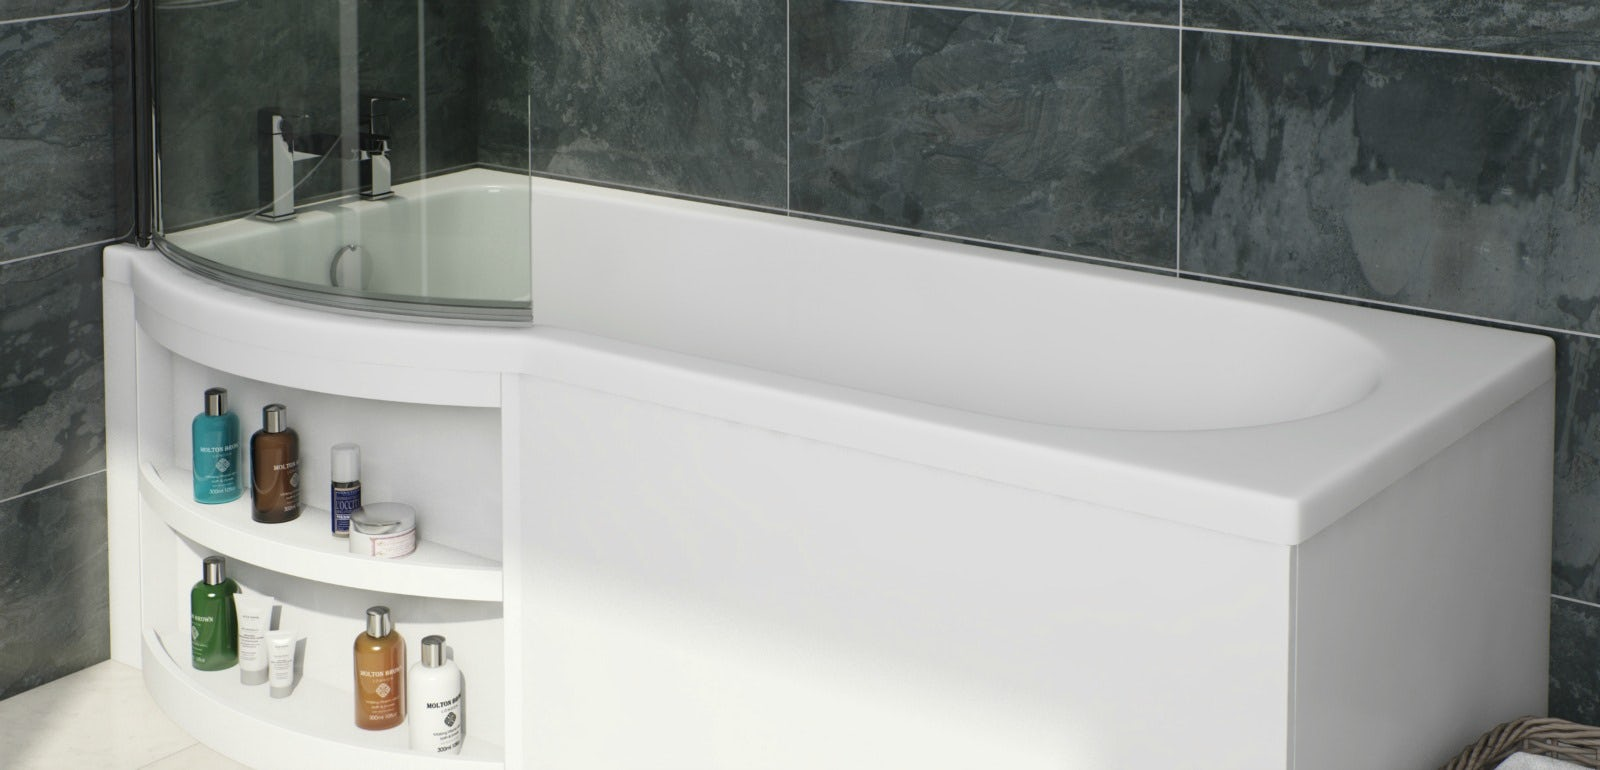 shower baths buying guide victoriaplum com shower baths guide